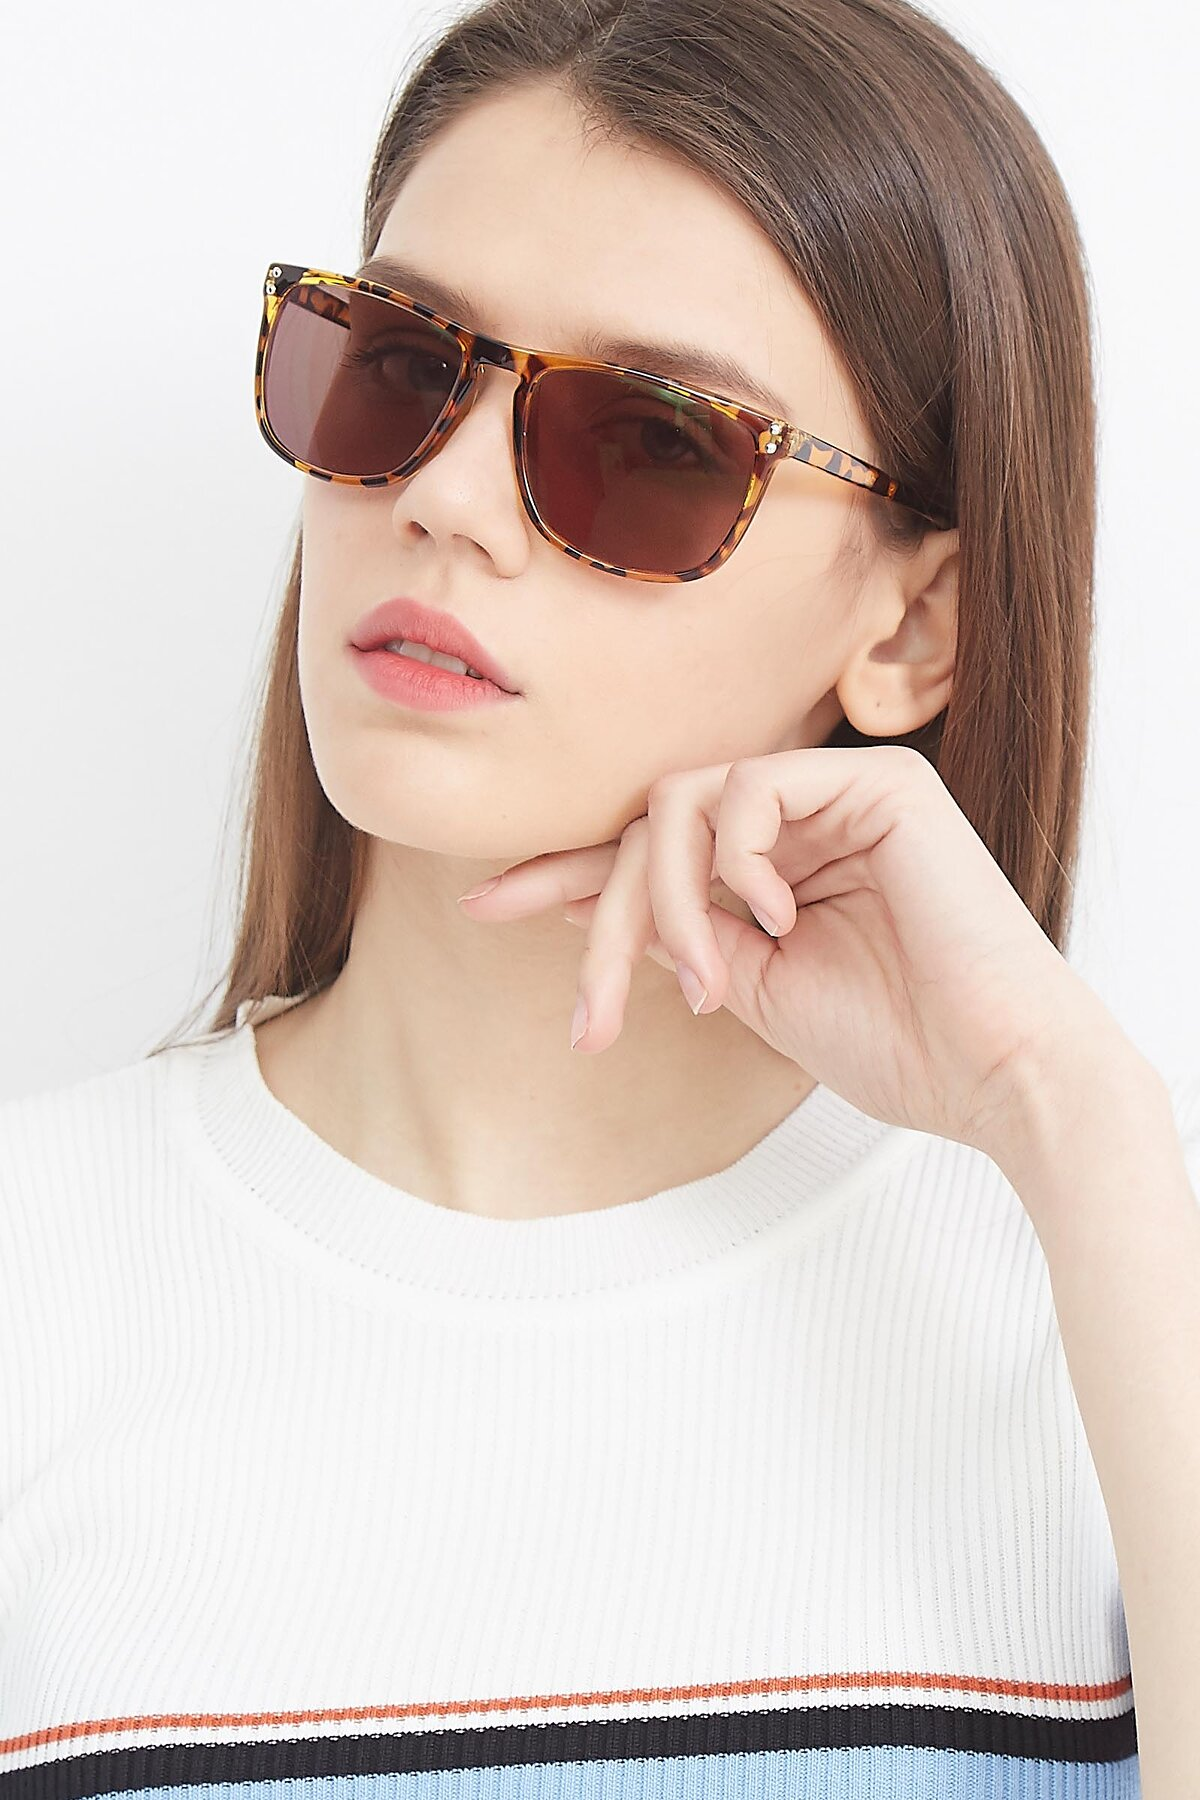 Women's lifestyle photography (portrait-1) of SSR411 in Translucent Orange Tortoise with Brown Tinted Lenses